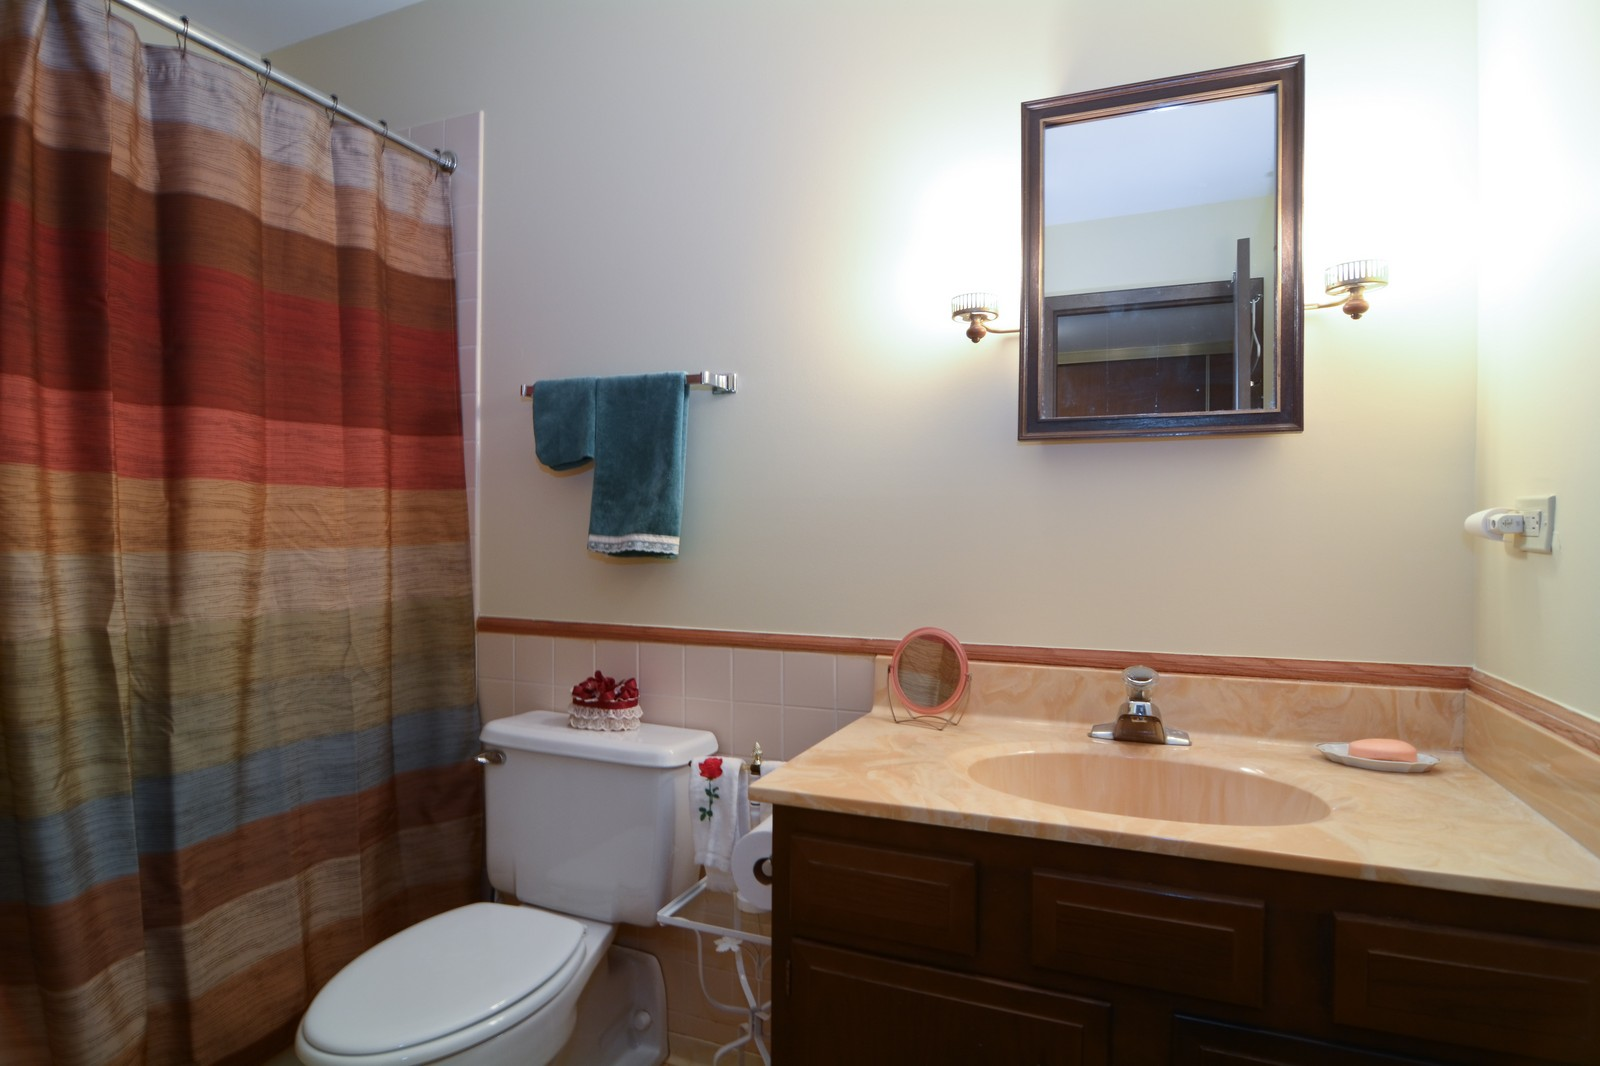 Real Estate Photography - 6545 S Main St, Downers Grove, IL, 60516 - Bathroom